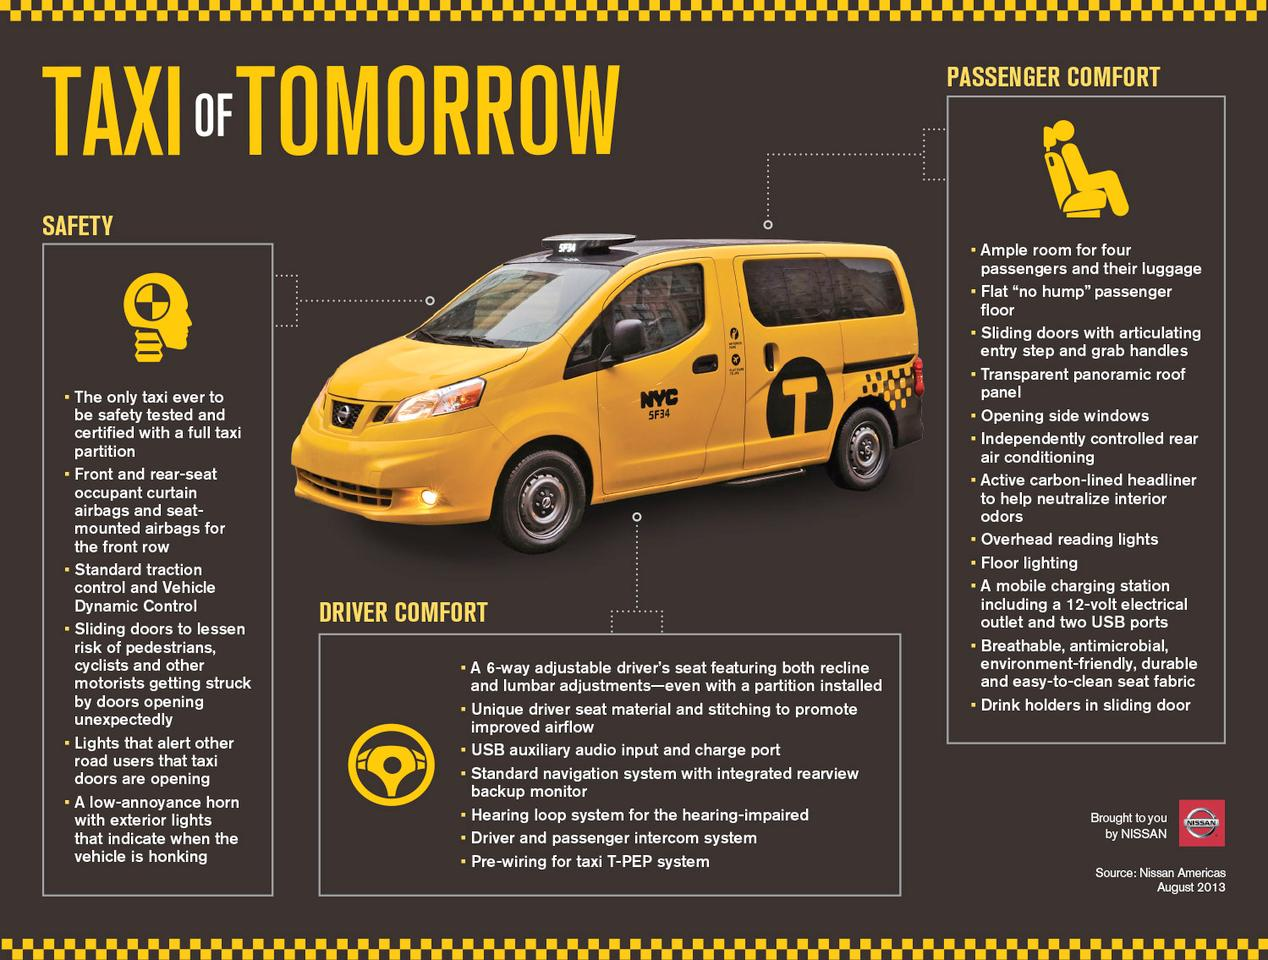 Some of the features of the Taxi of Tomorrow